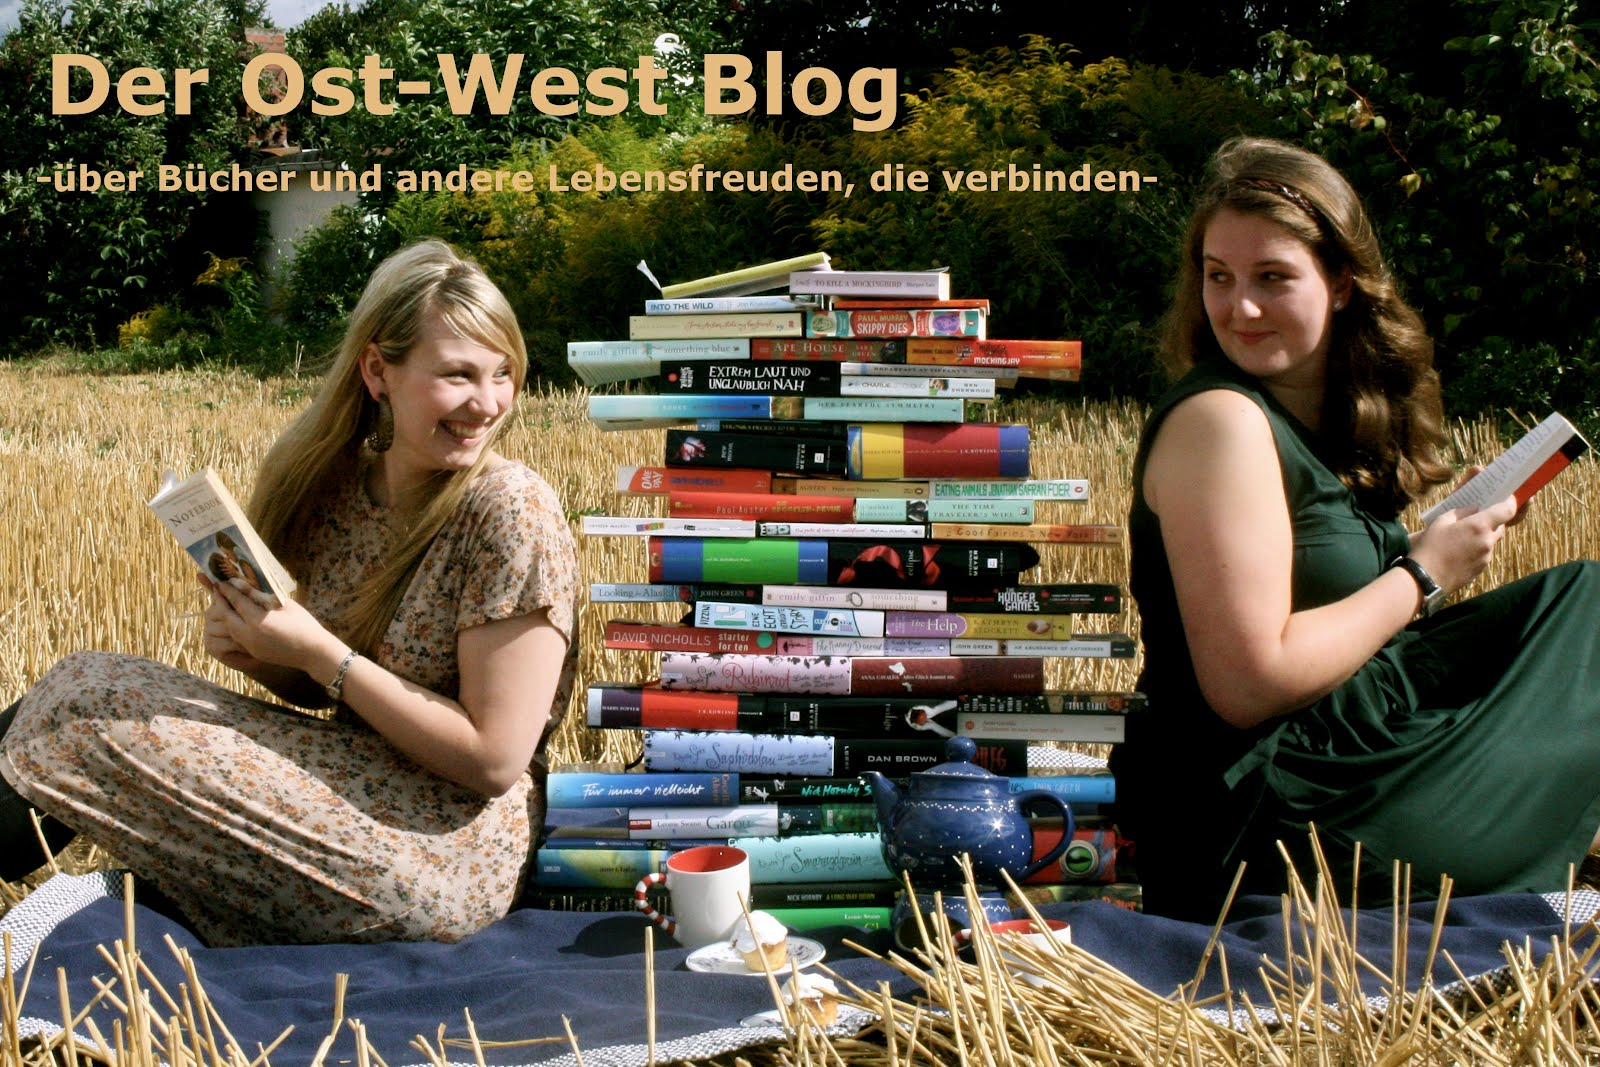 Der Ost-West Blog